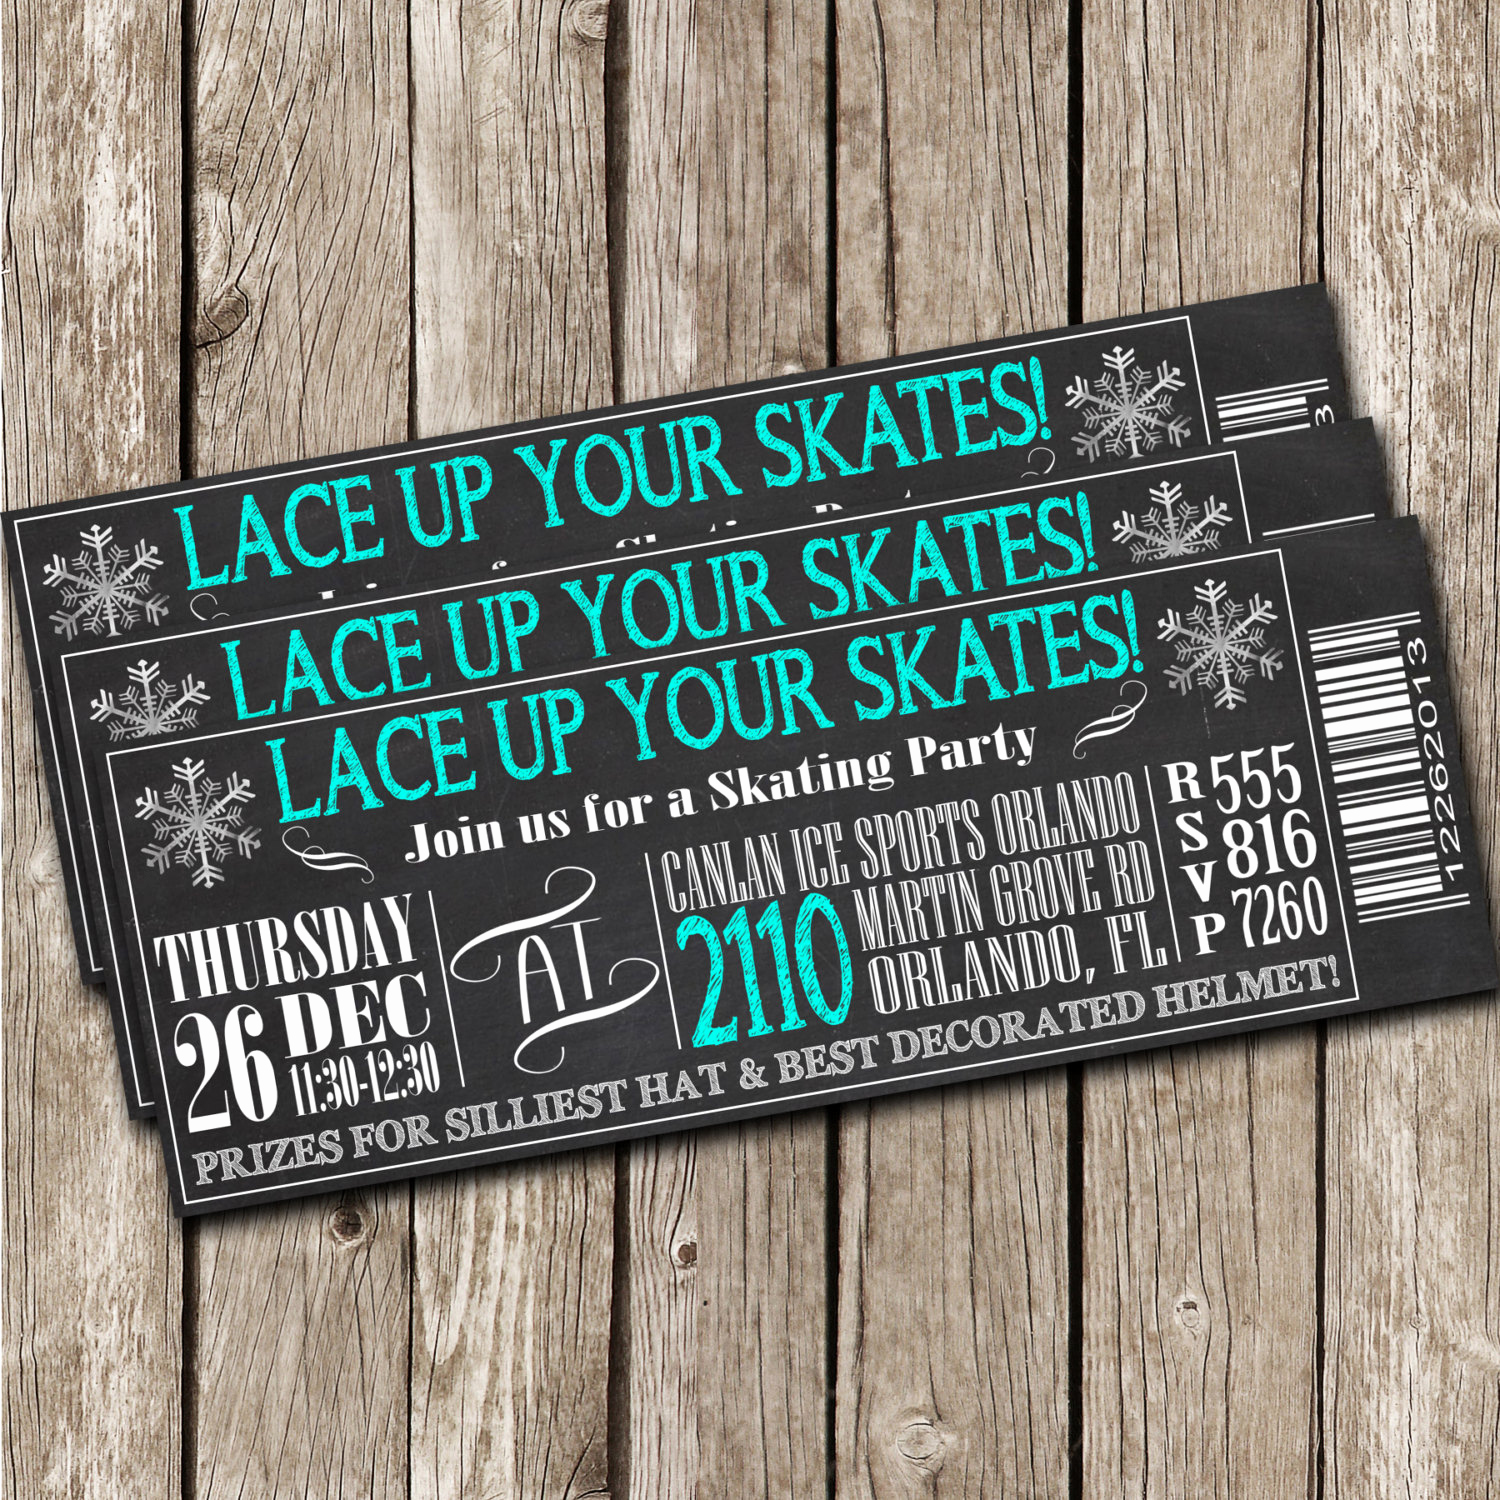 Ice Skating Party Invitation Luxury Ice Skating Party Invitation Skating Invitation Ice Skating